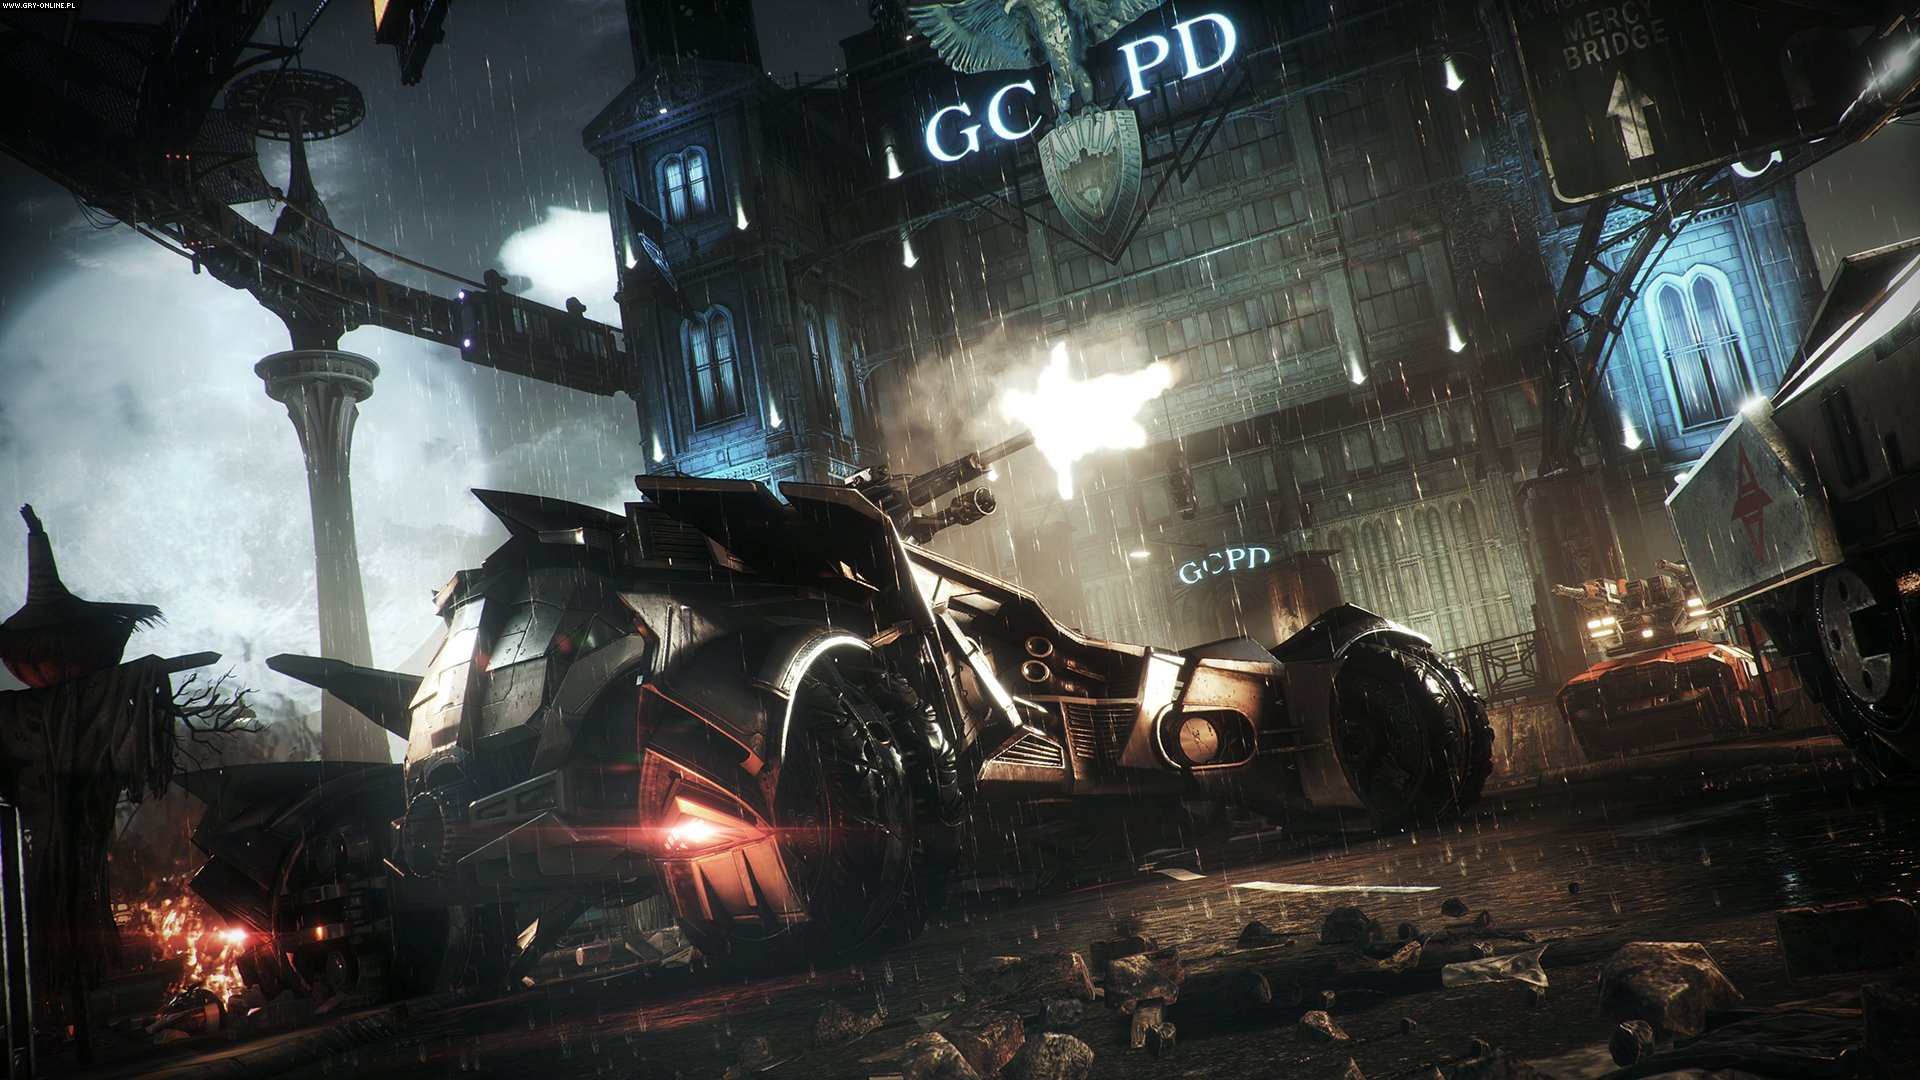 Batman: Arkham Knight PC, PS4, XONE Games Image 4/63, RockSteady Studios, Warner Bros. Interactive Entertainment